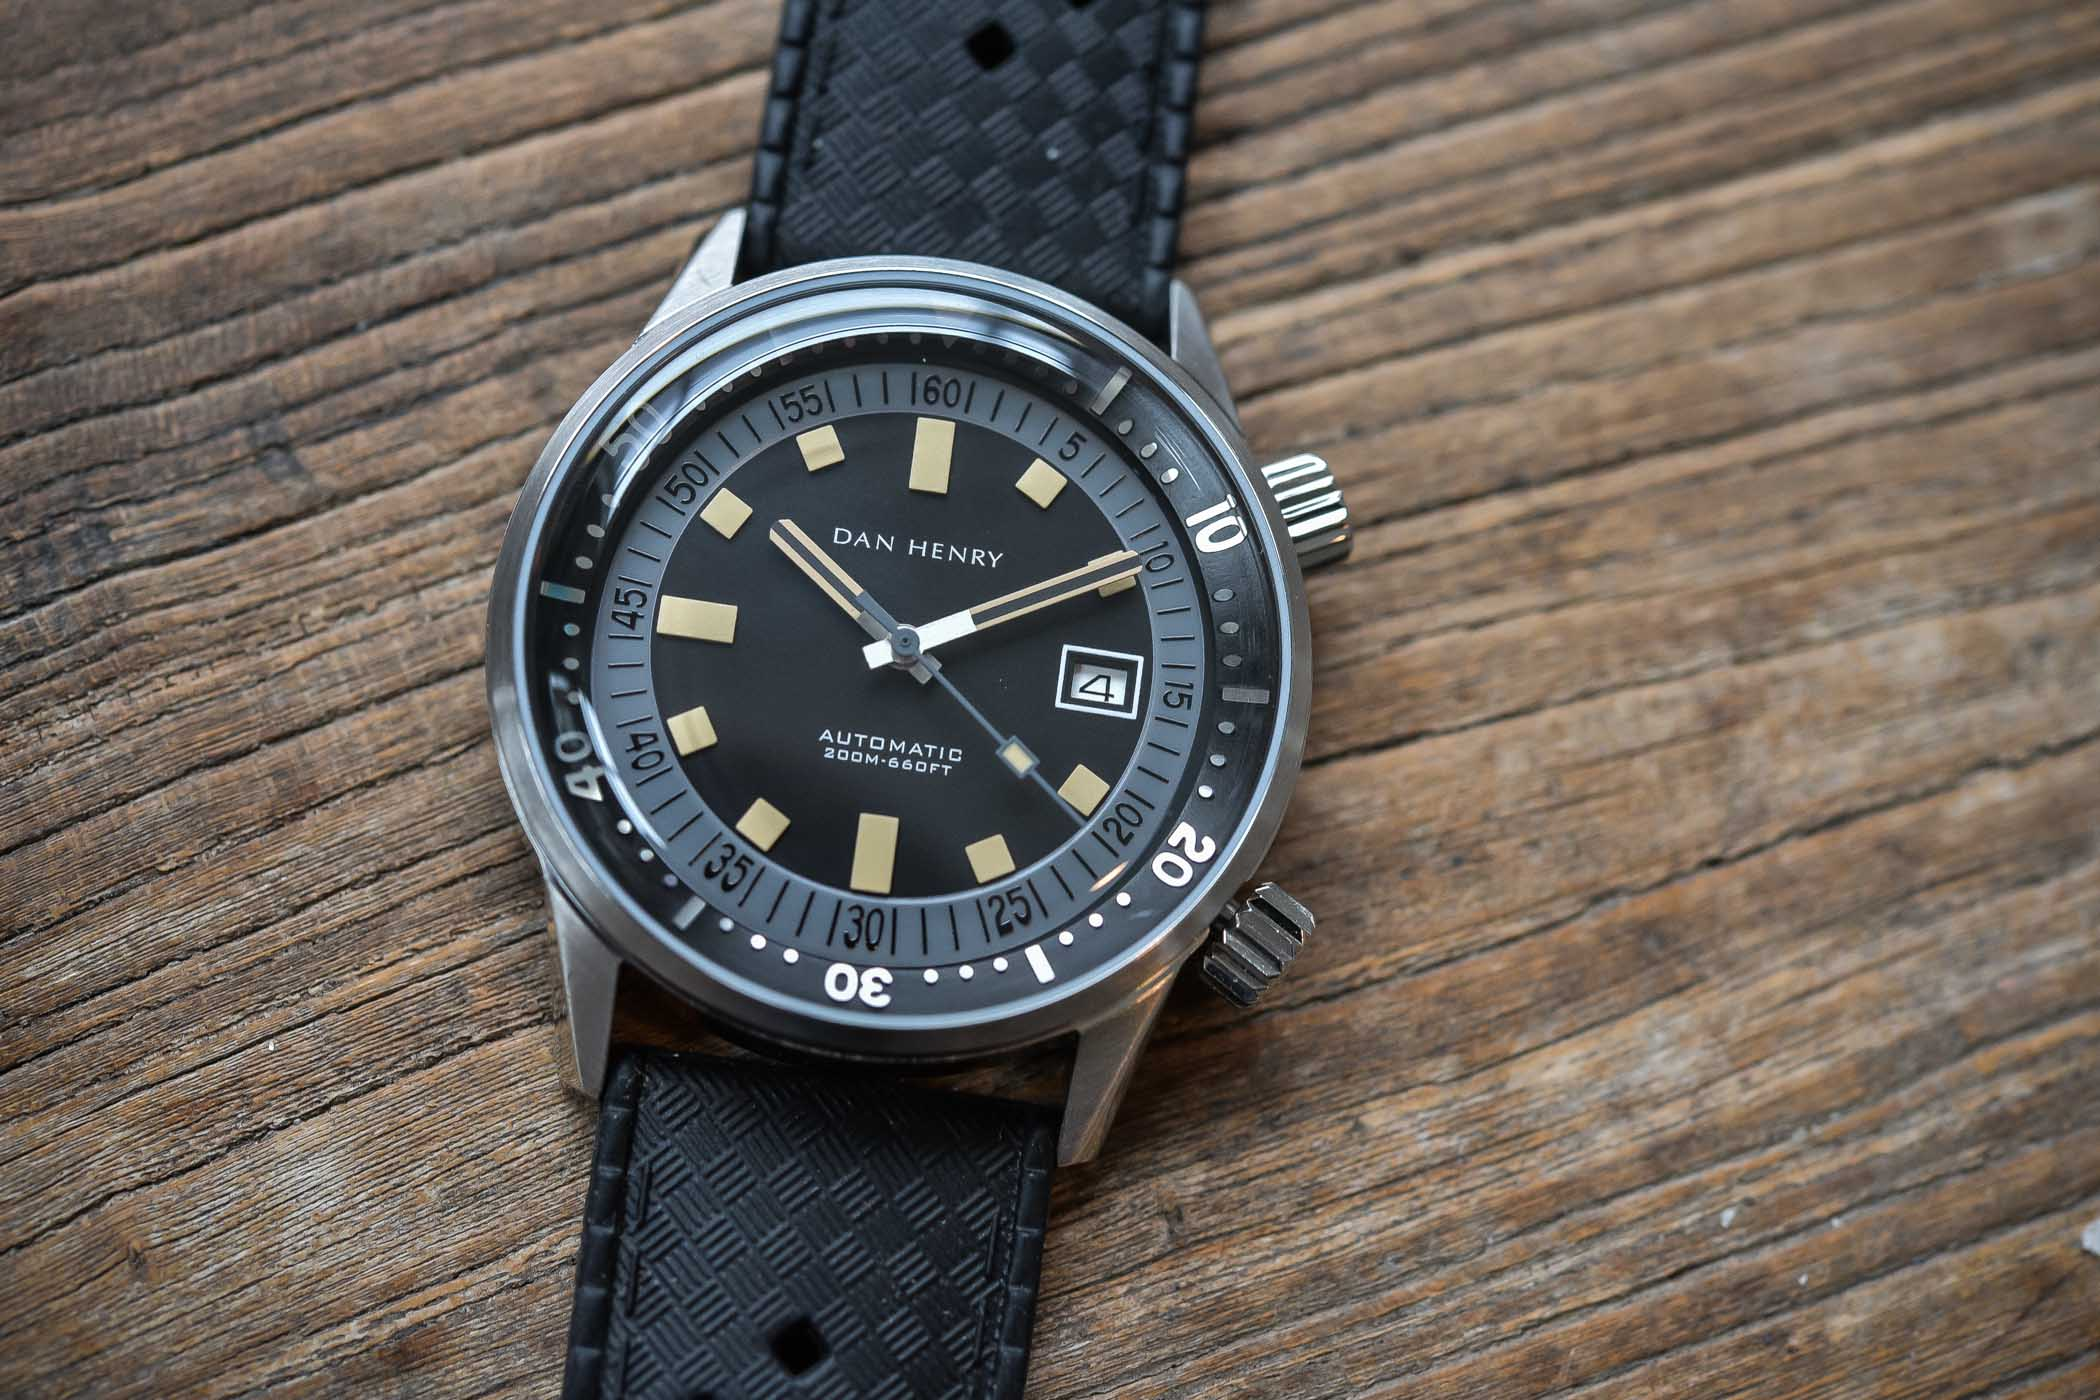 Dan Henry 1970 Automatic Diver Compressor - review